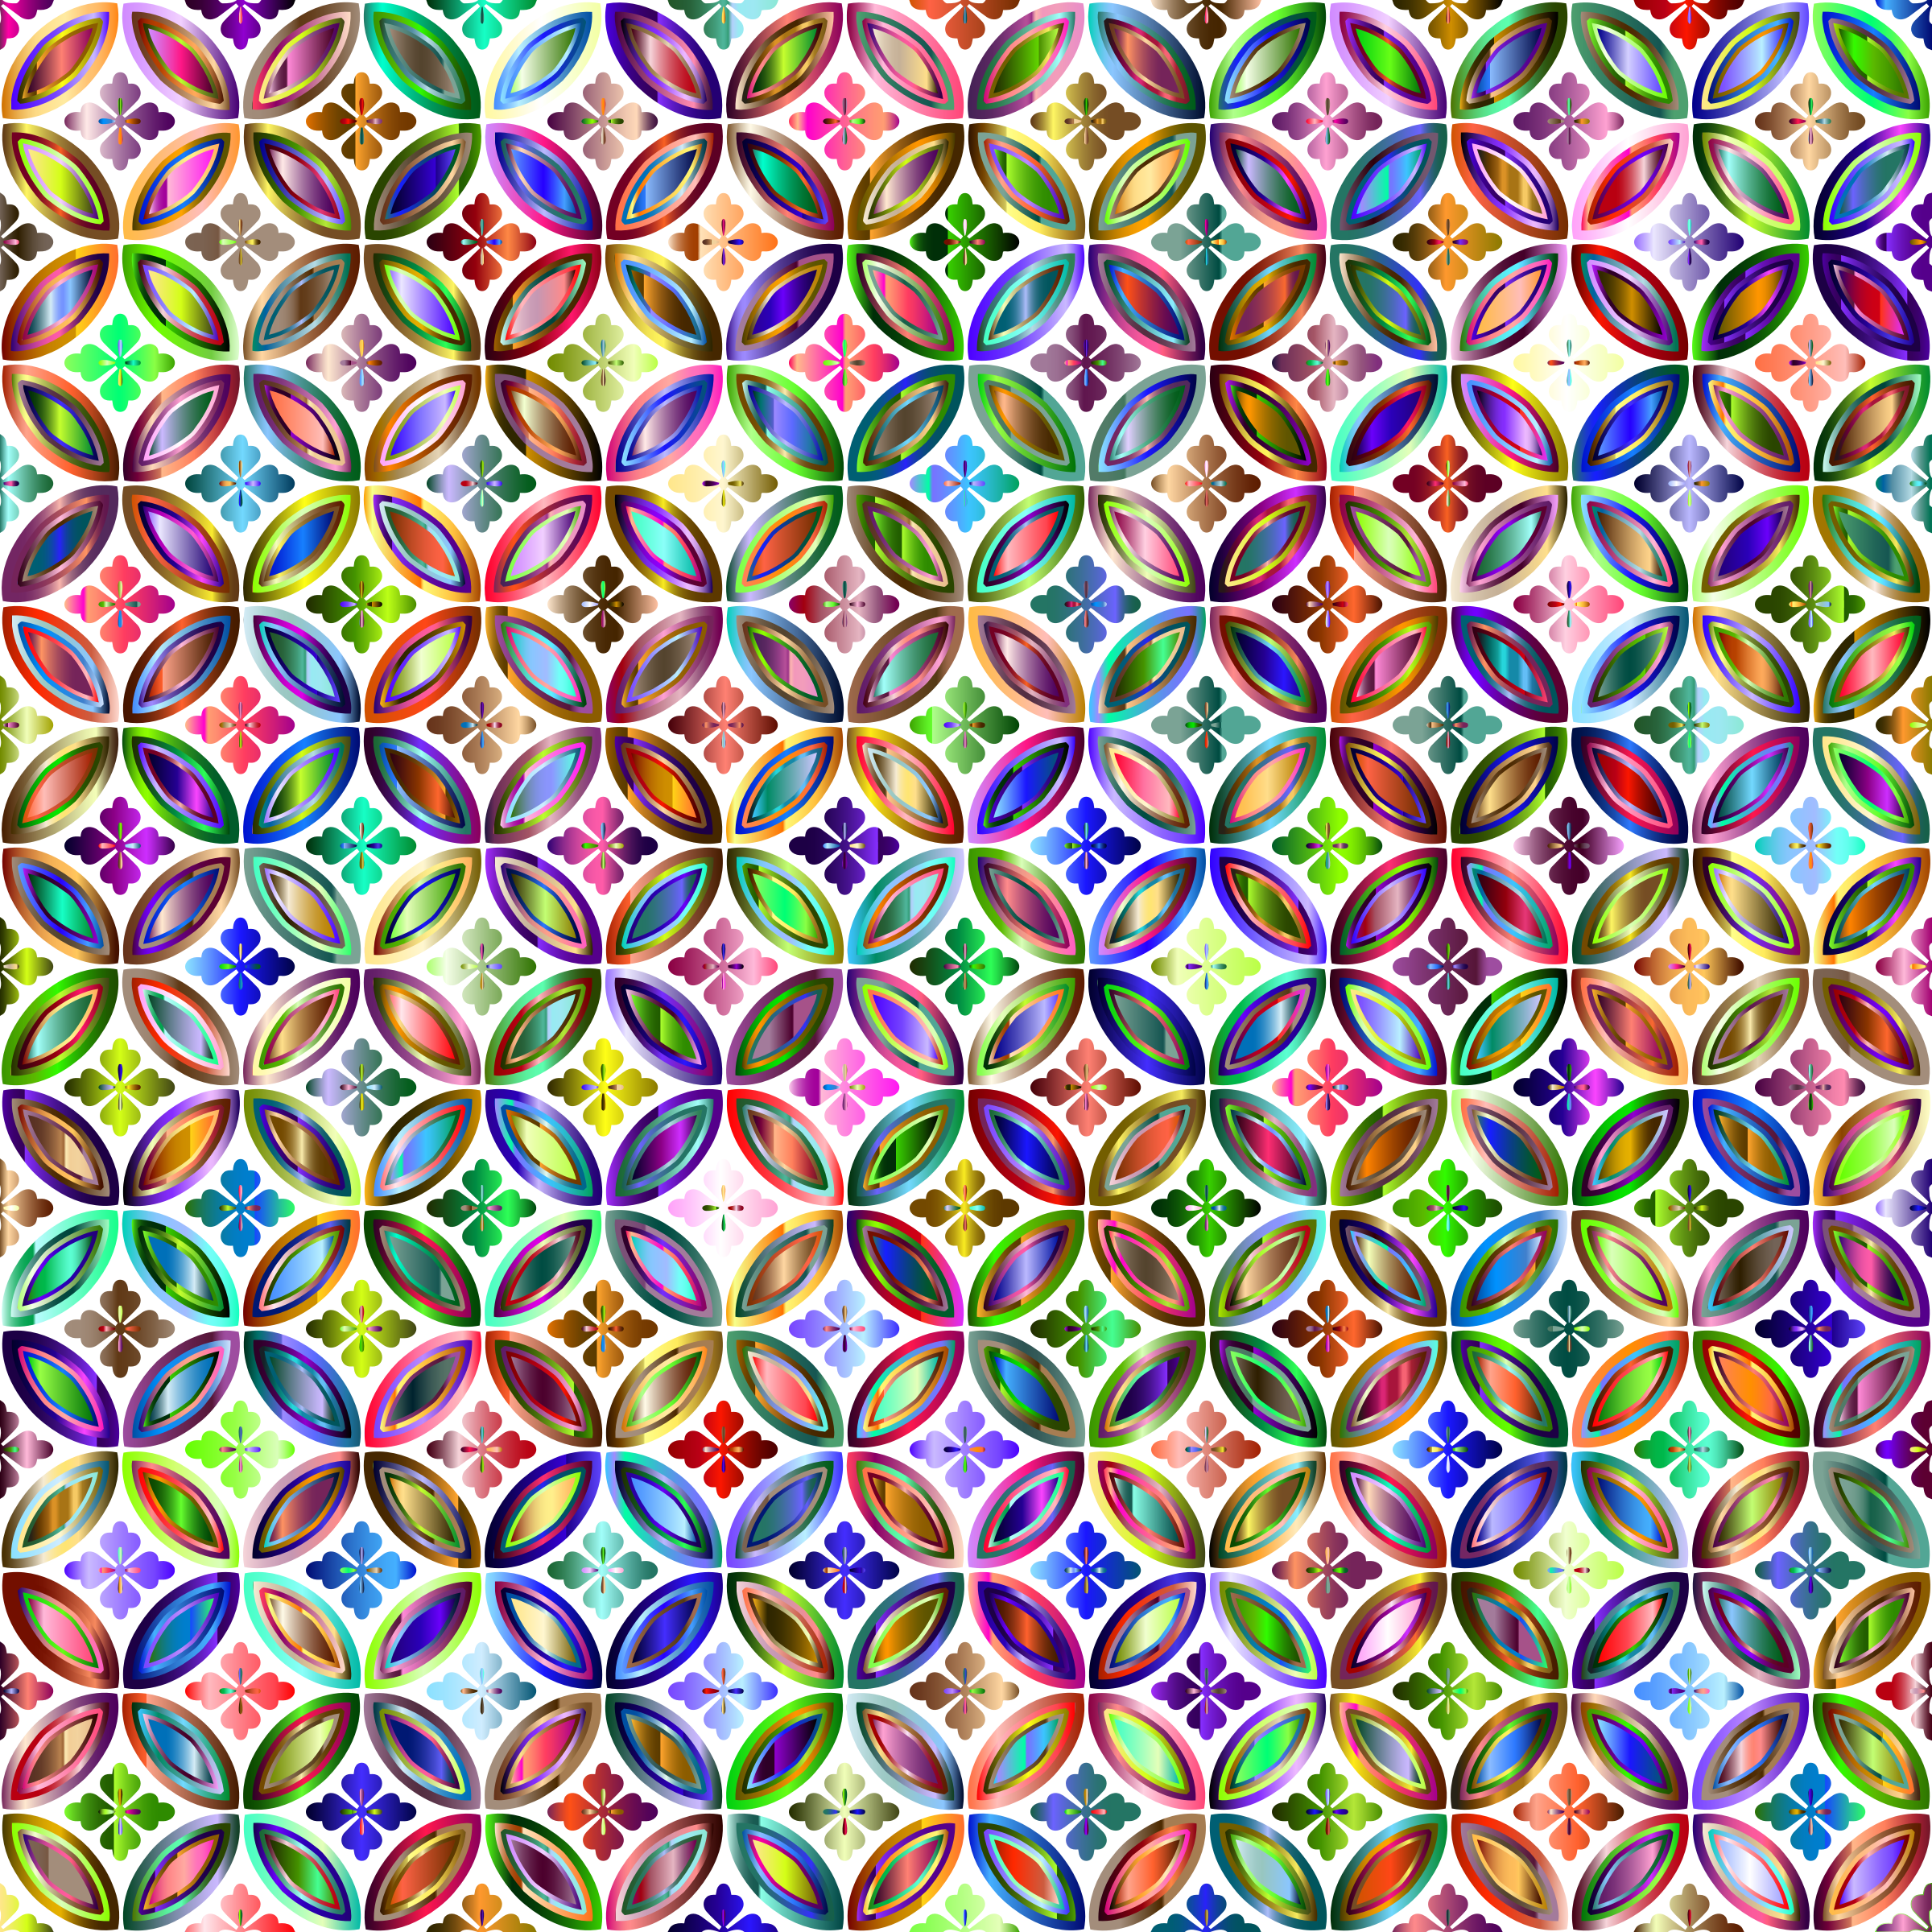 Prismatic Floral Design Pattern 4 No Background by GDJ